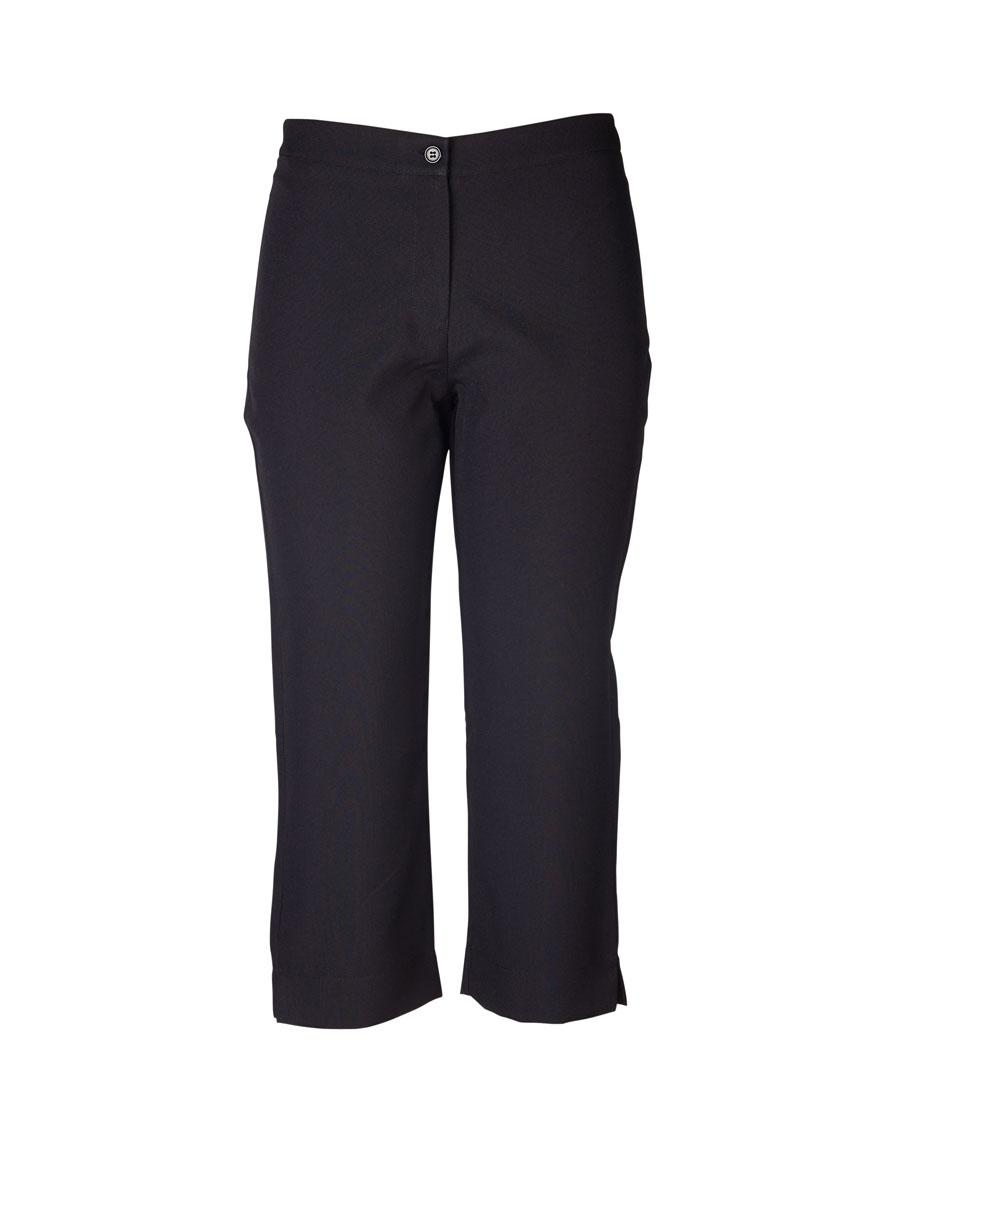 Louise Capri 3/4 Pants - Black